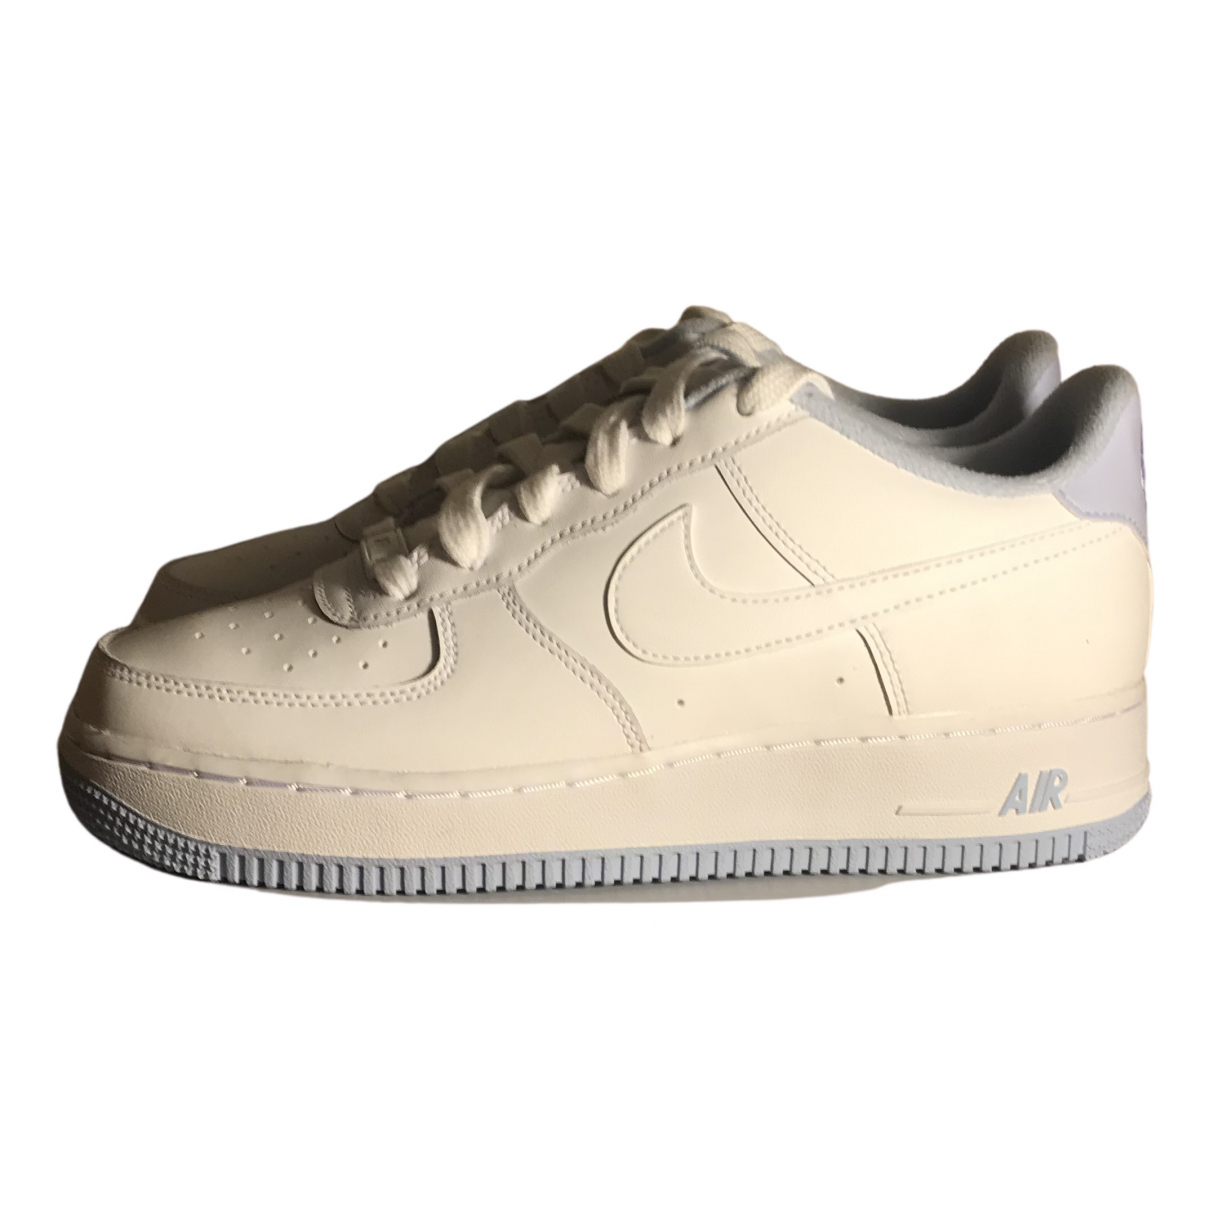 Nike Air Force 1 Blue Leather Trainers for Women 38.5 EU